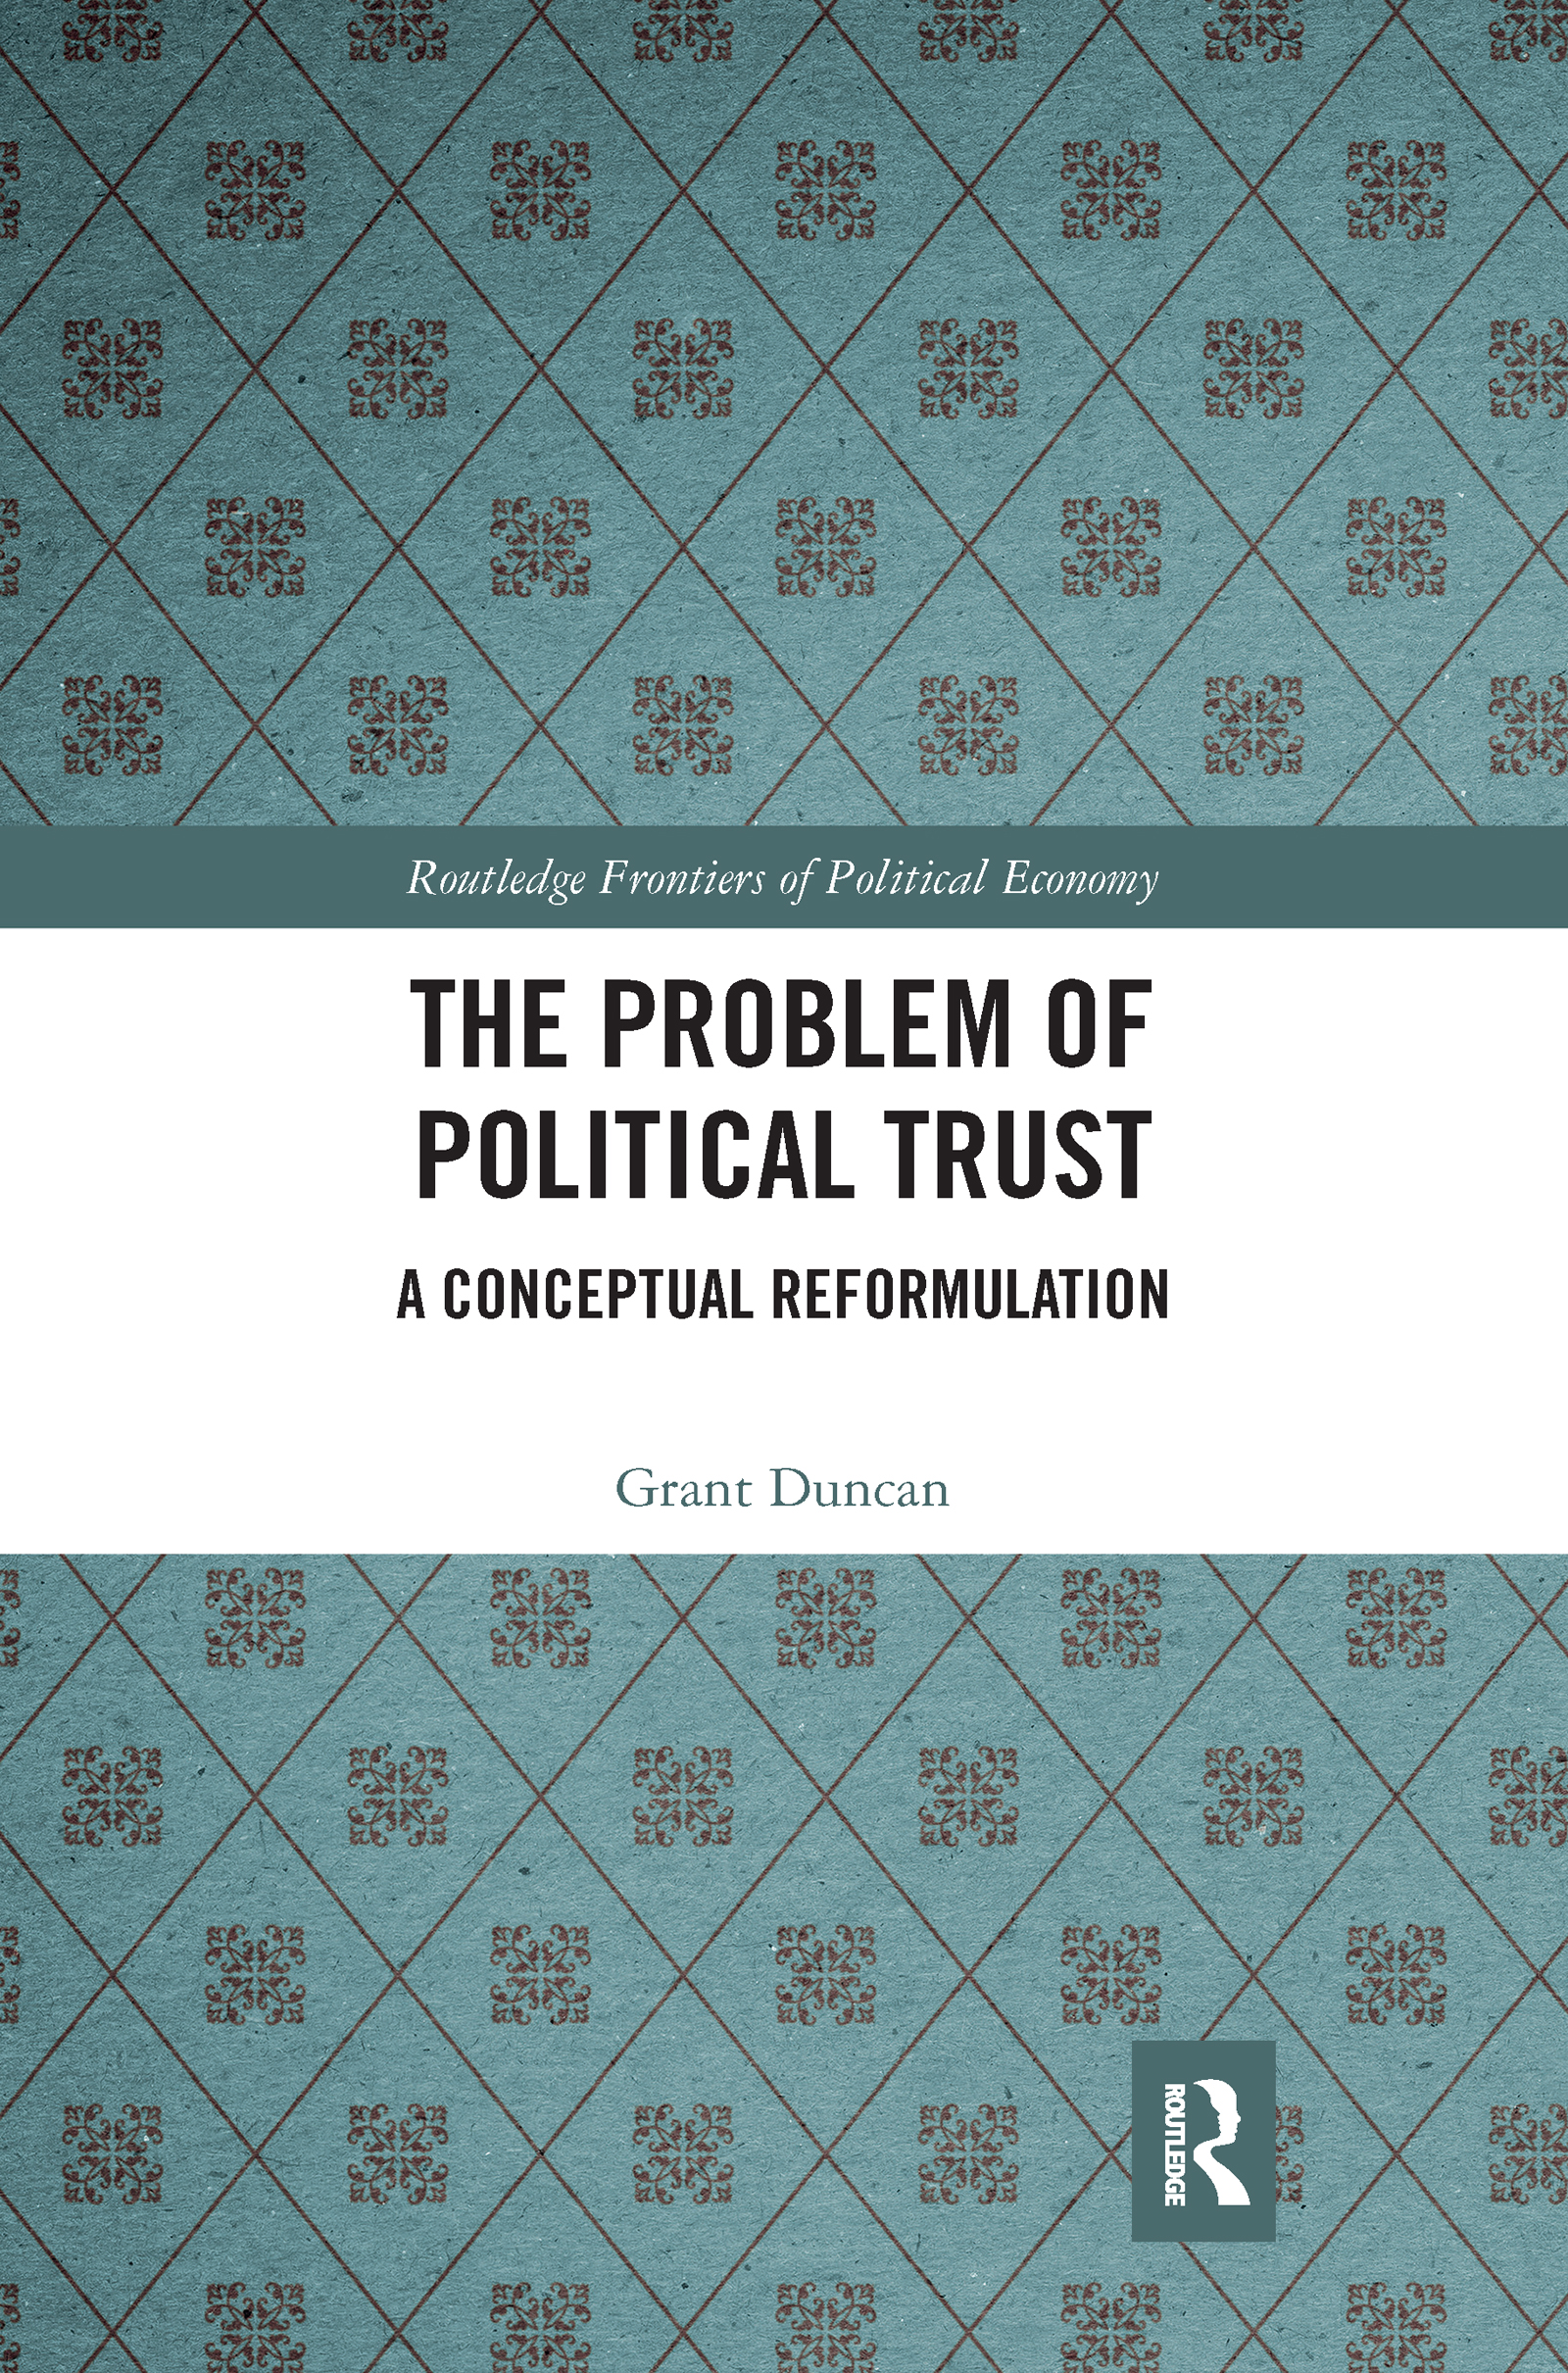 The Problem of Political Trust